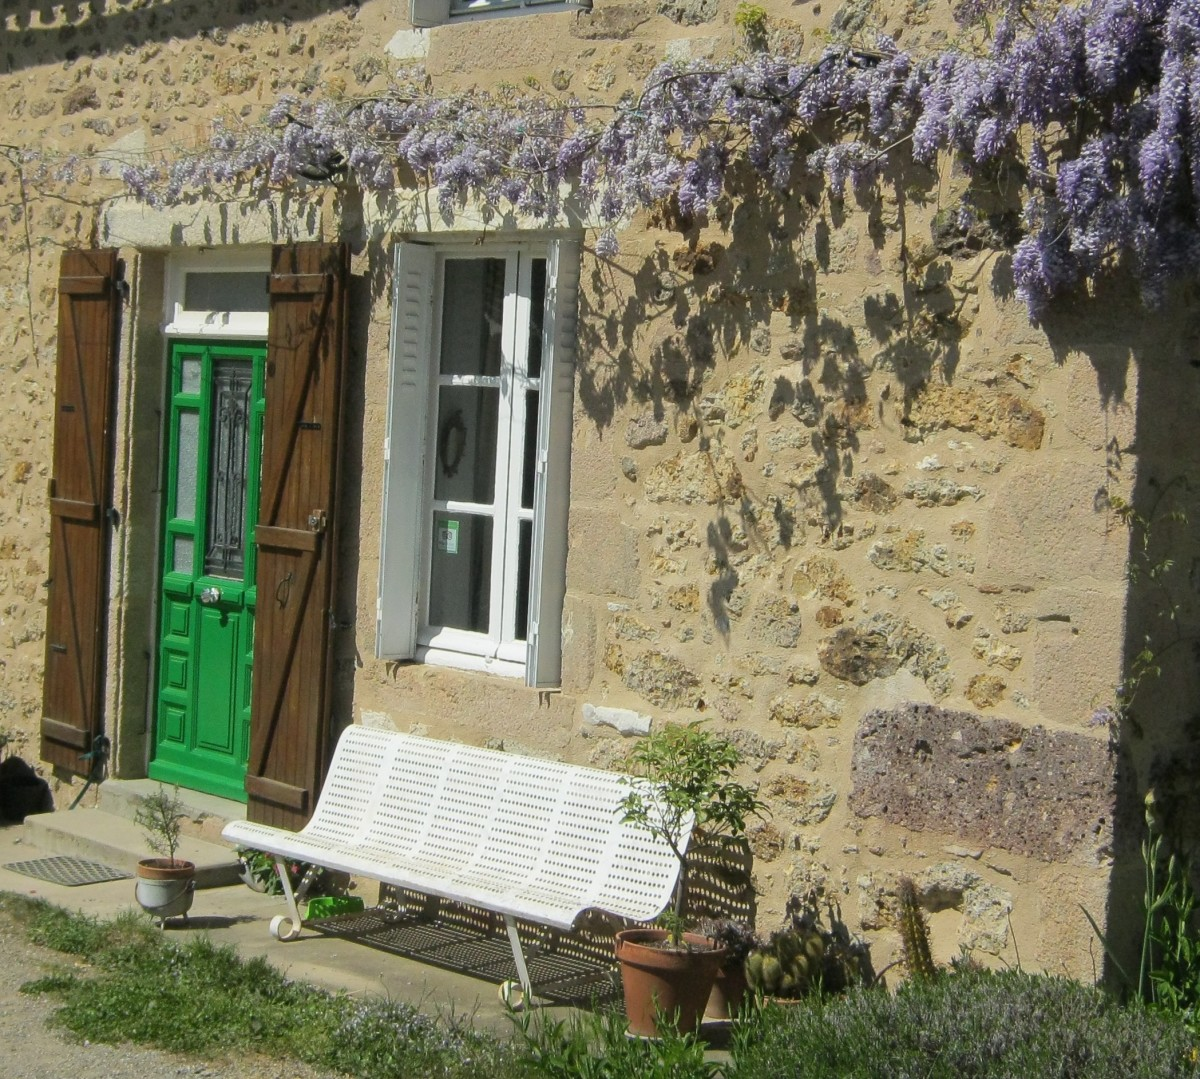 Repoint a stone wall - Our last project - Les Trois Chenes B&B in Limousin, France